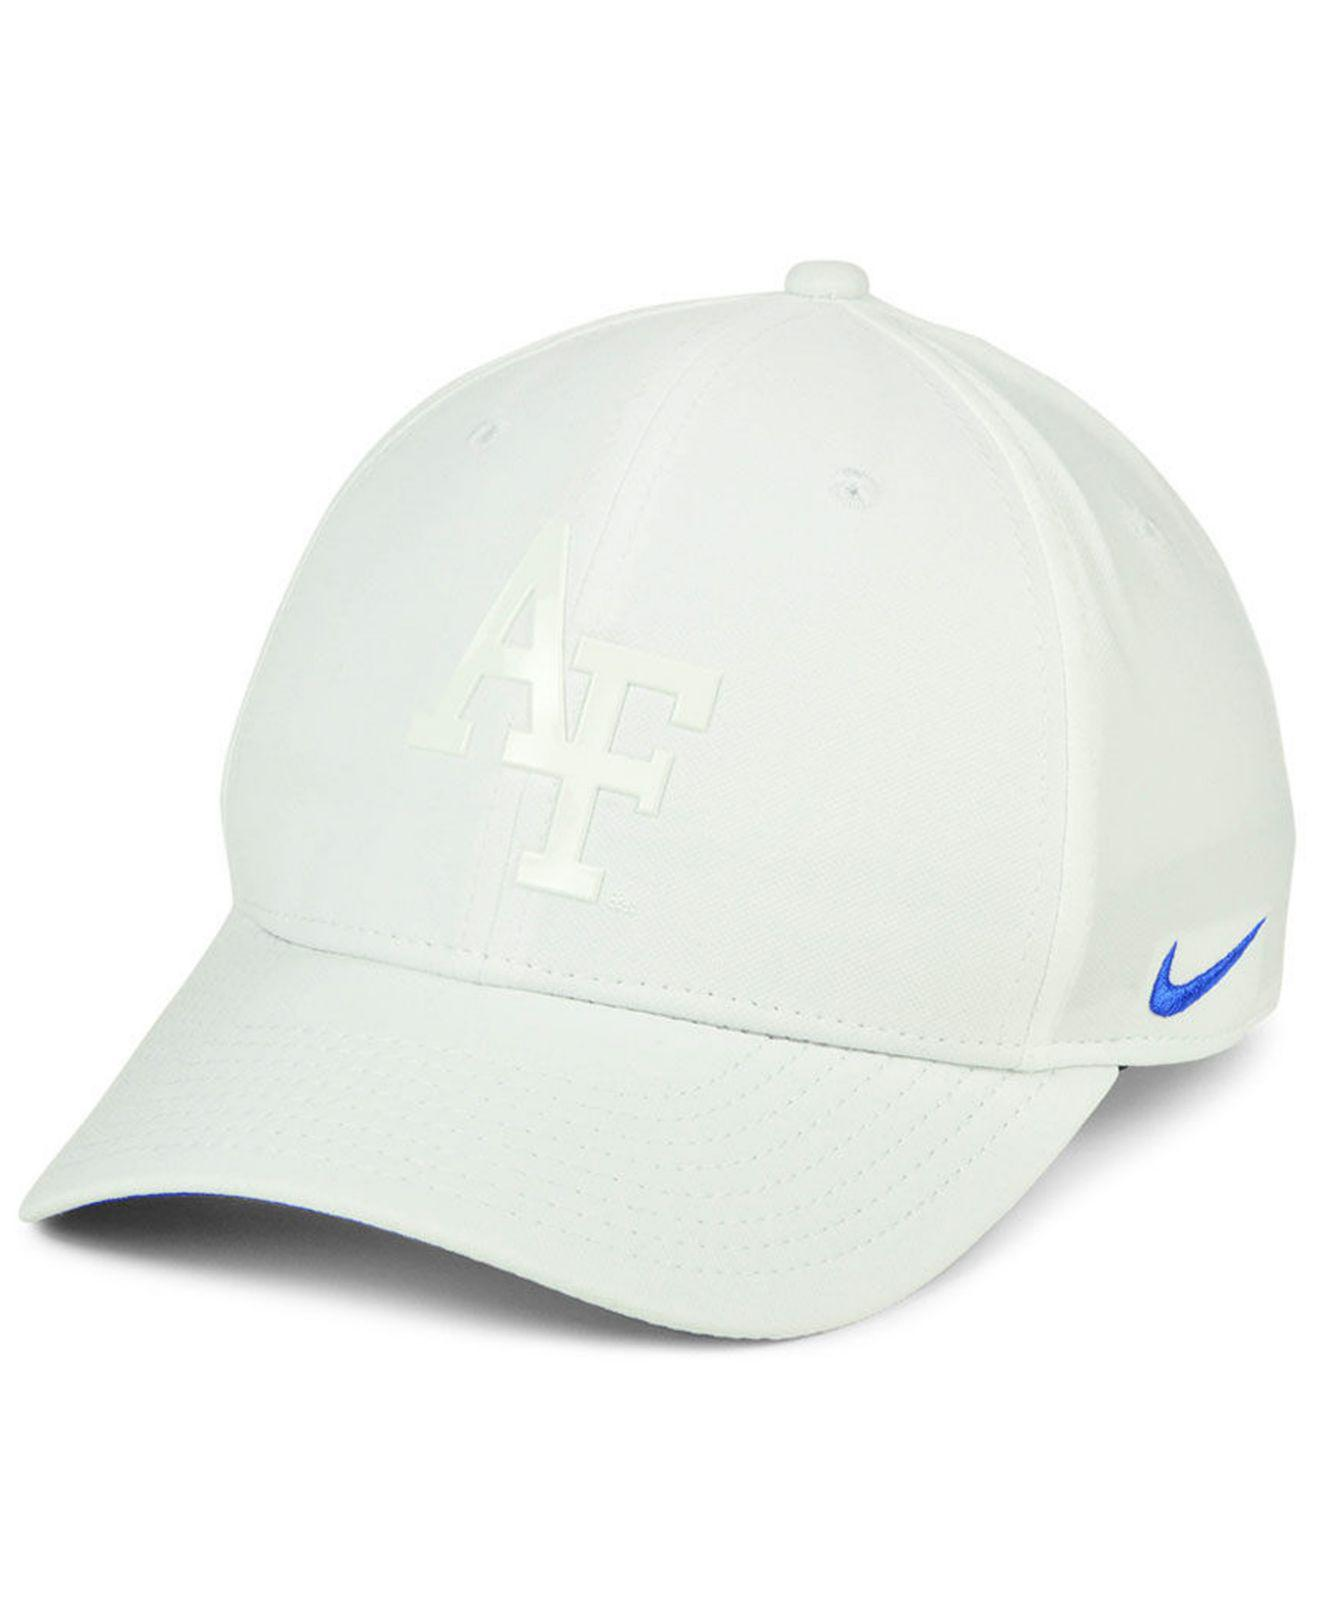 newest collection d4084 ff59d ... Cap for Men - Lyst. View fullscreen